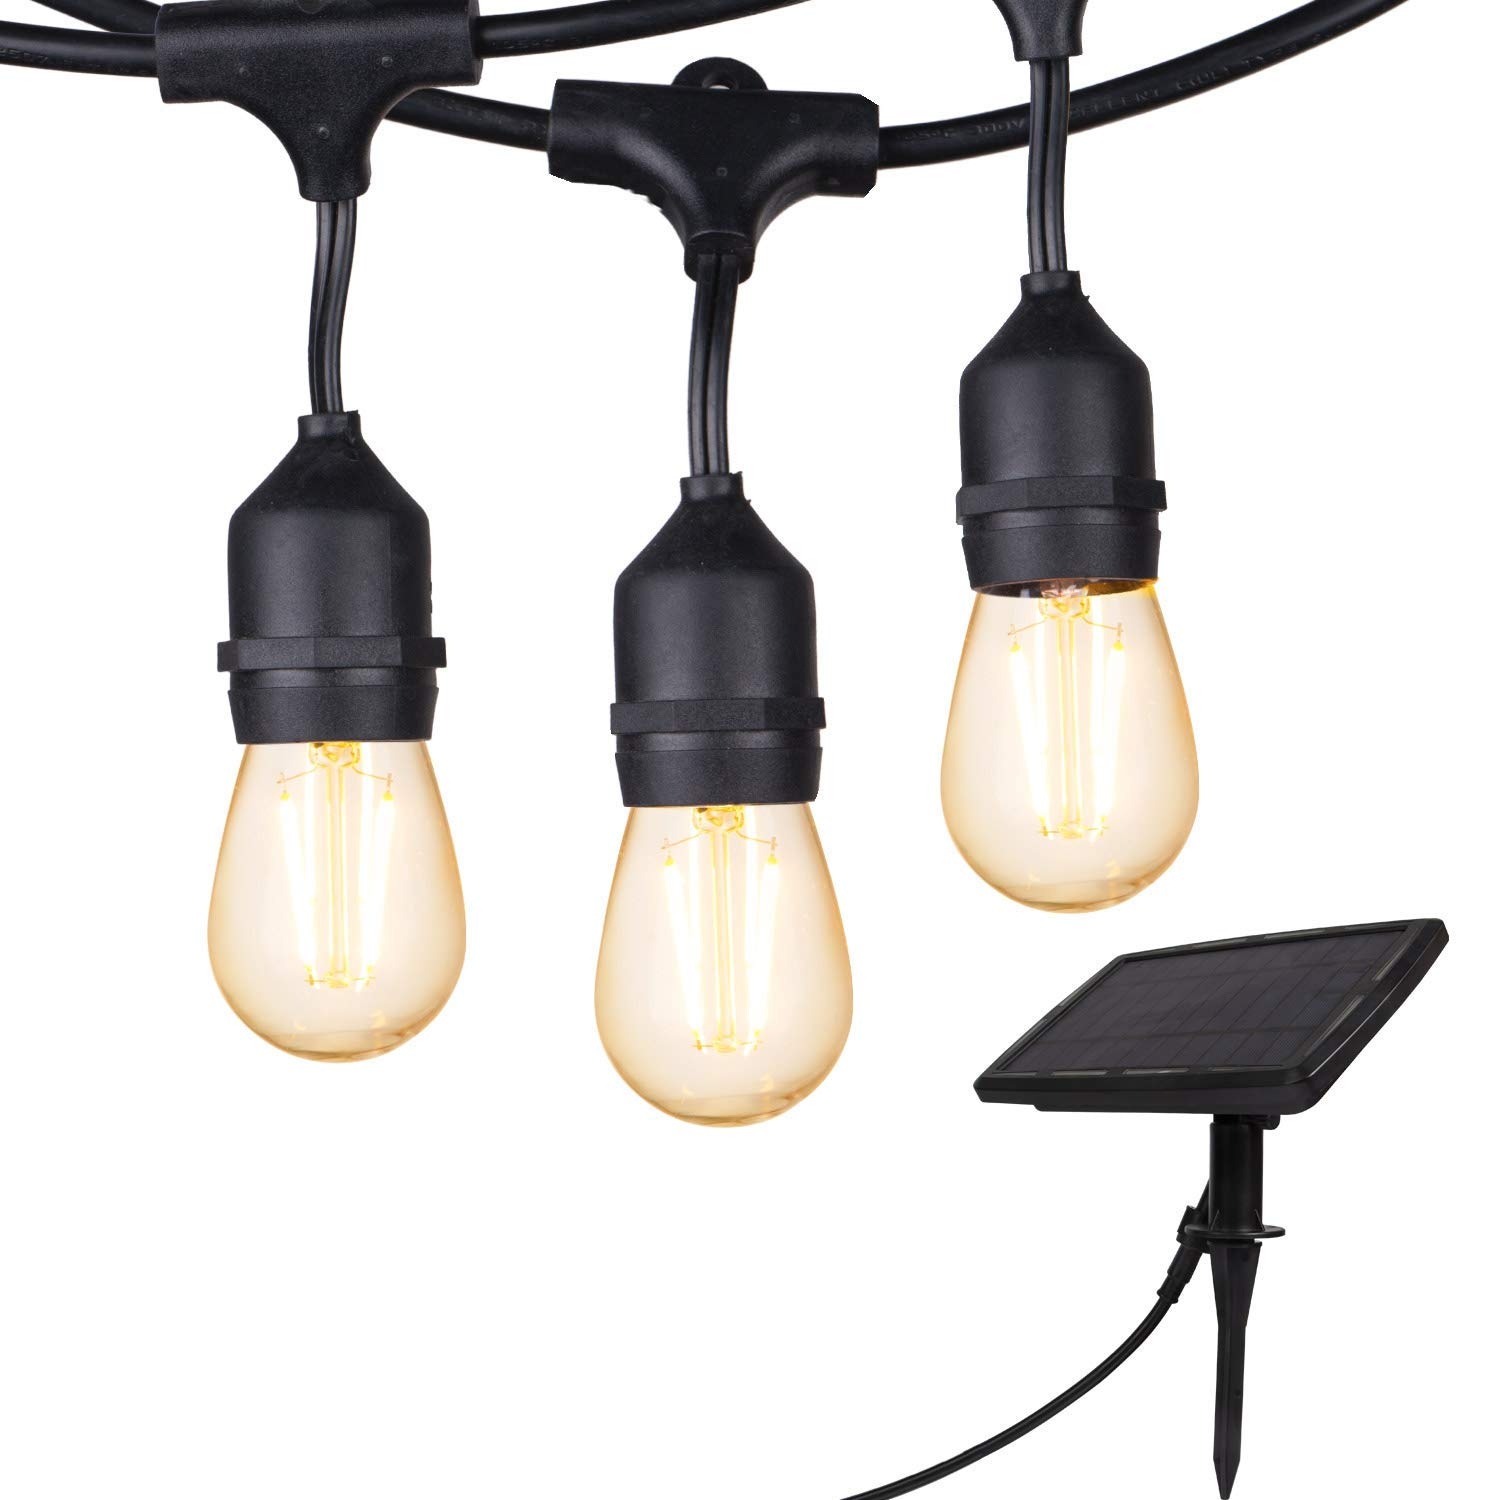 Outdoor Solar String Lights 28 Ft Vintage S14 Hanging Patio Lights with 12 Shatterproof Dimmable LED Bulbs, Auto on/Off for Outdoor Bistro Cafe Garden Backyard Balcony Porch Gazebo Decor, Black